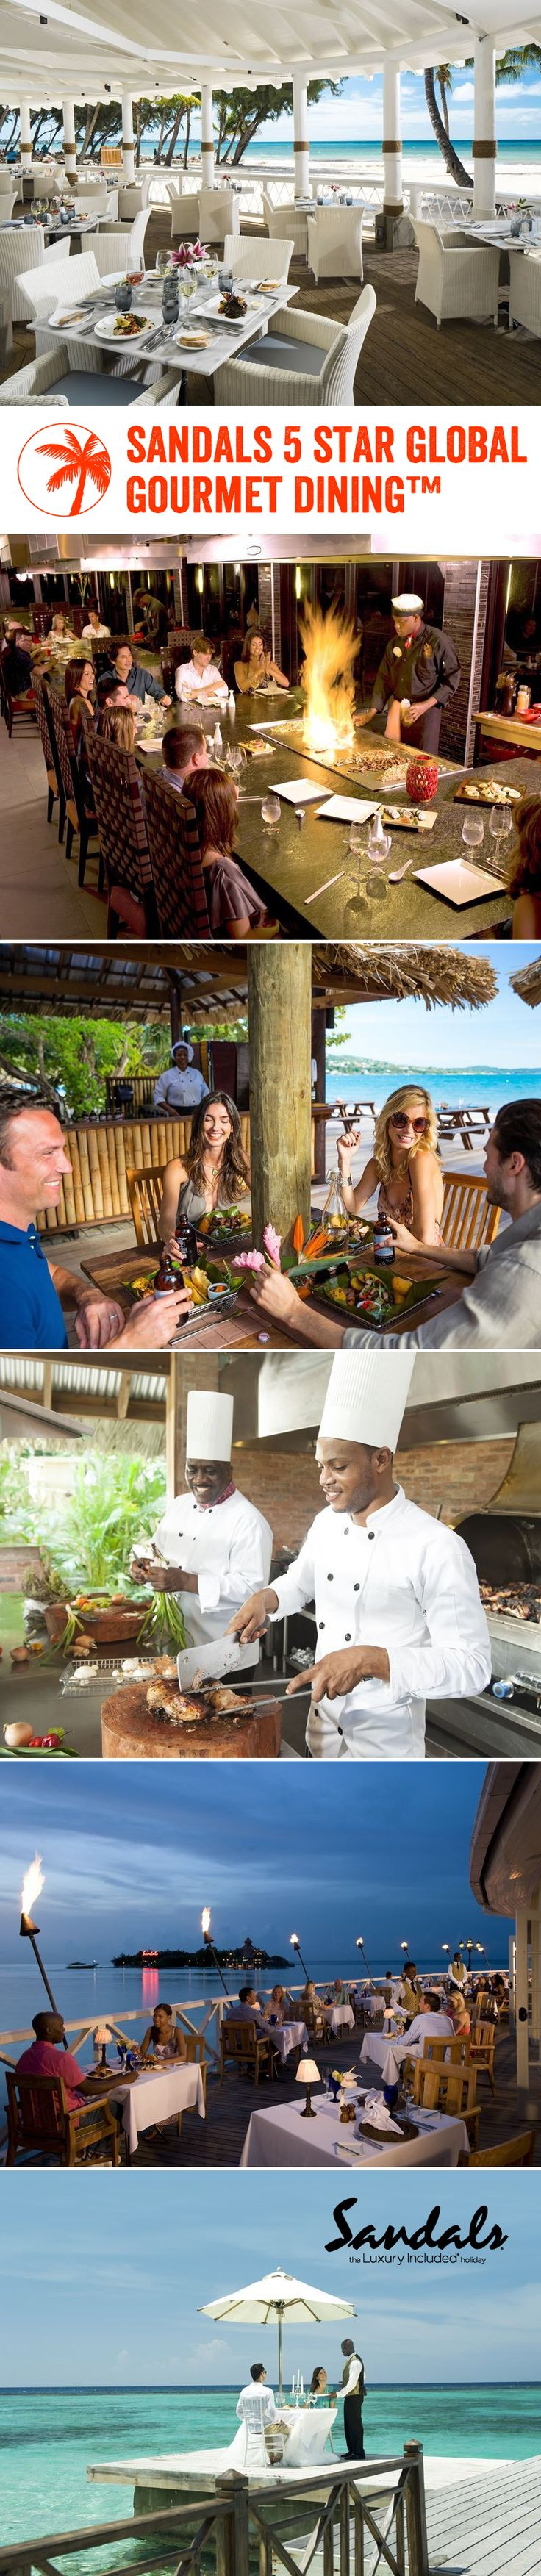 With up to 16 unique restaurants in each resort, Sandals' foodie journey is full of tantalising moments you won't want to miss